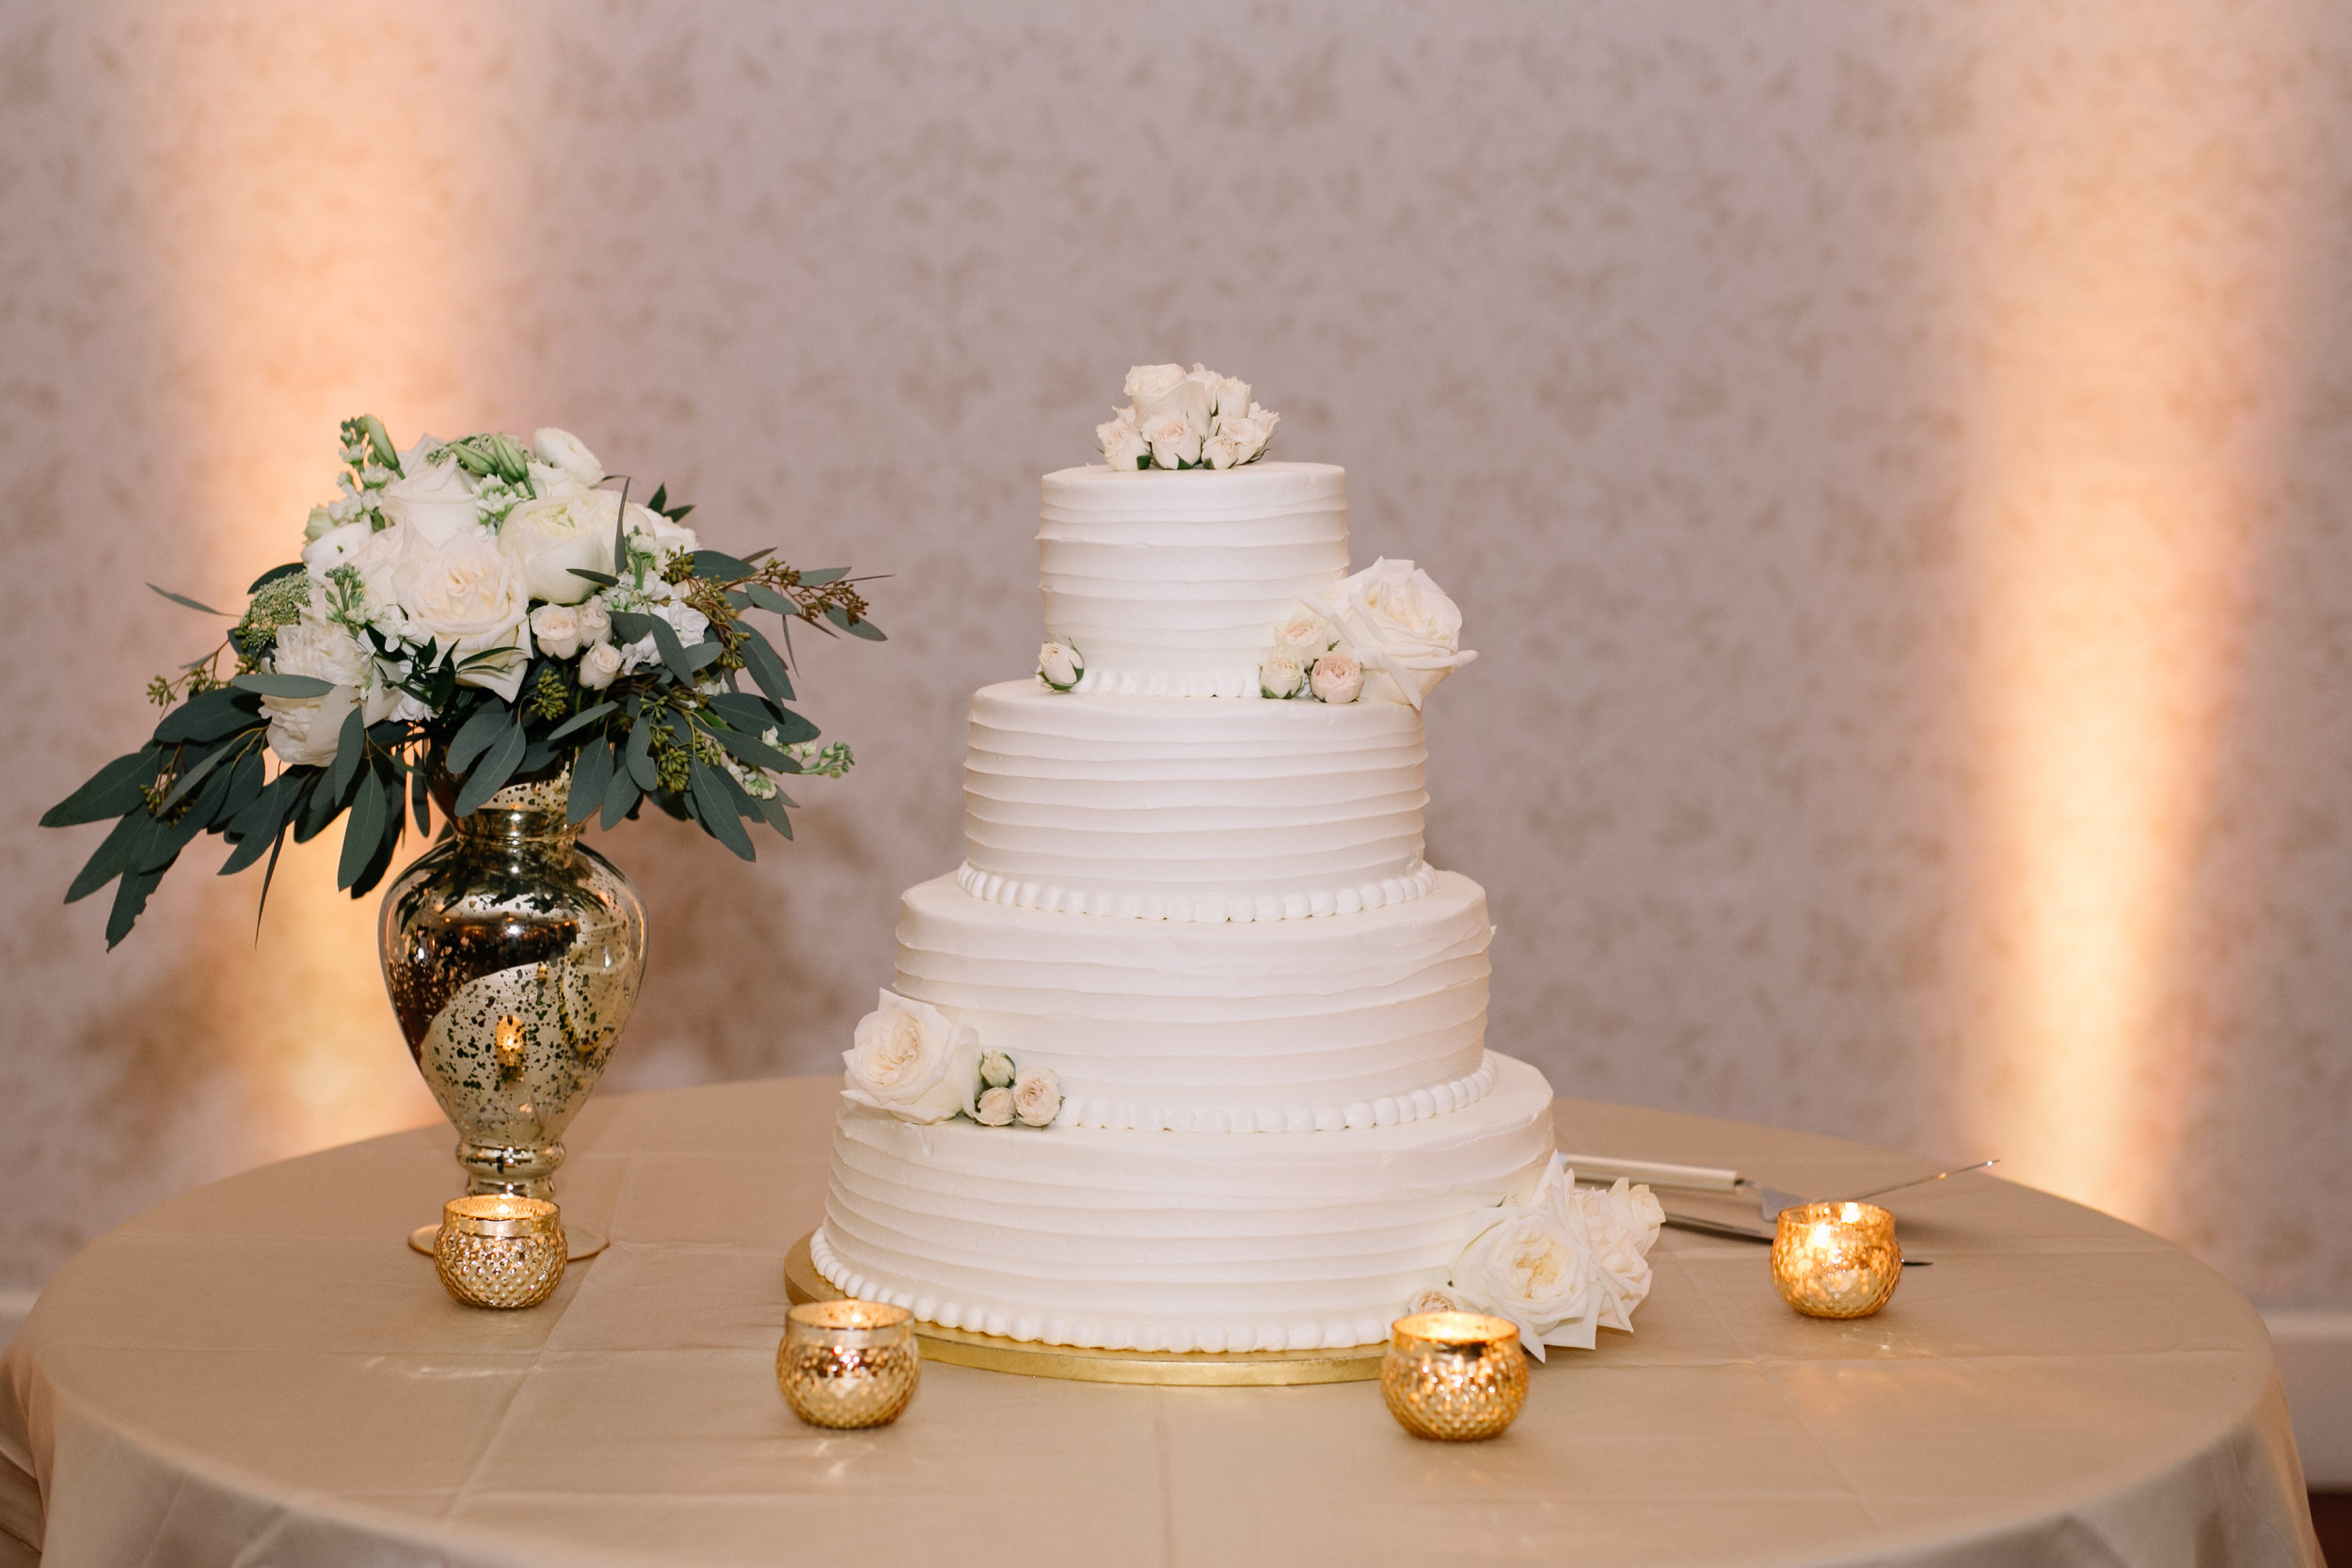 Four tier wedding cake with garden roses